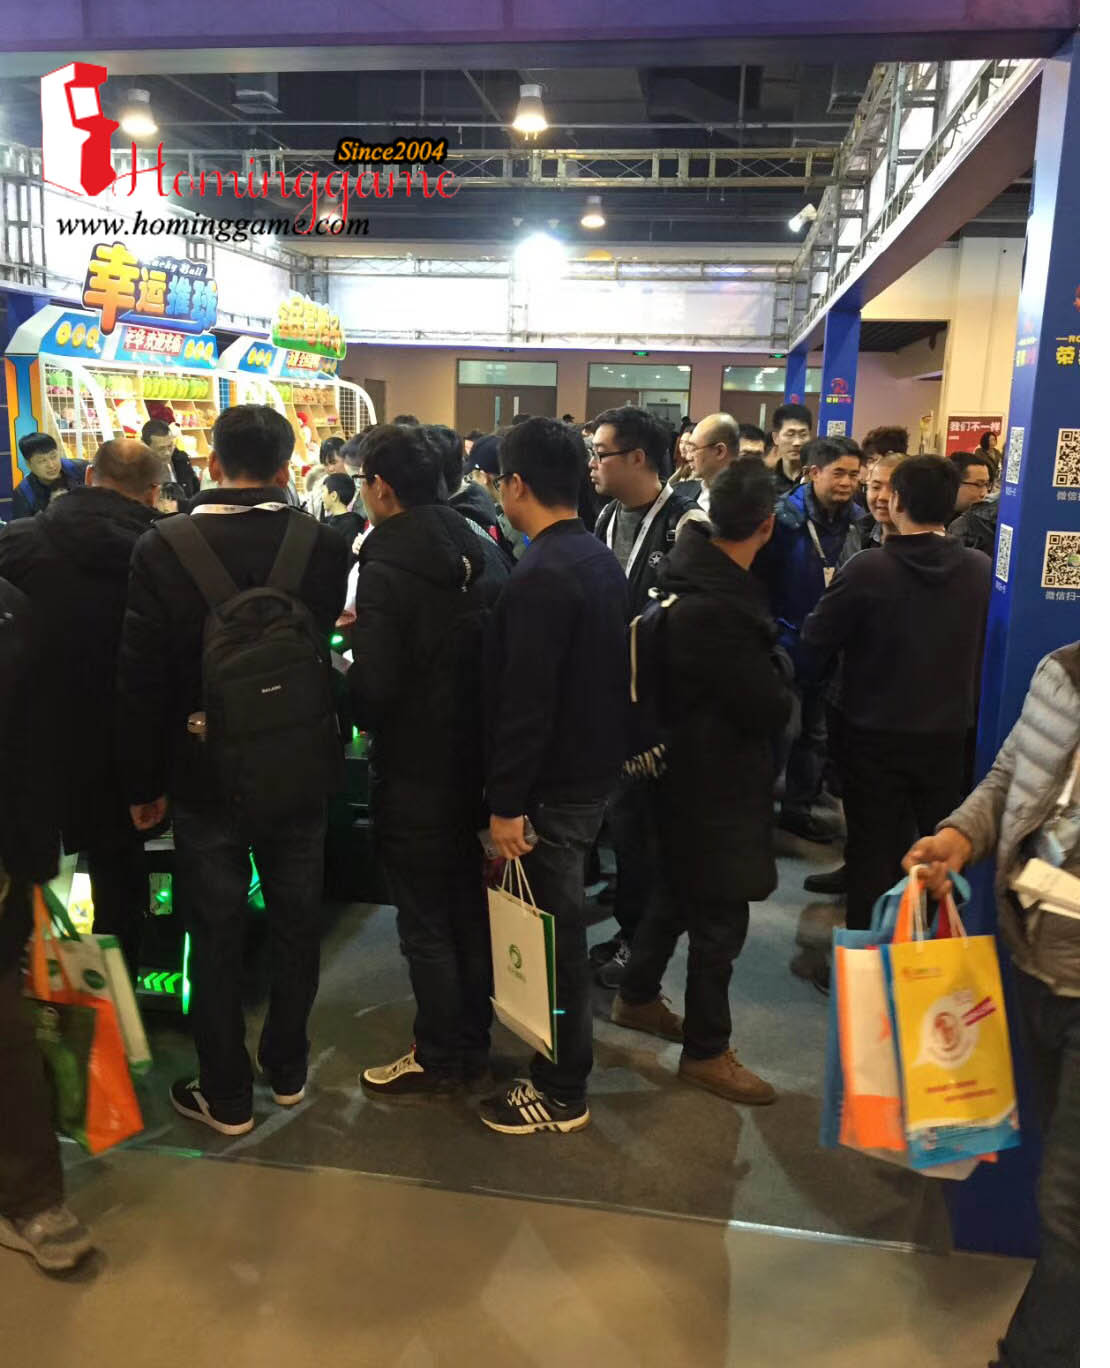 We Are in 2018 CAAPA BeiJing Game Exhibition Show,CAAPA,game show,game exhibition show,game machine,arcade game machine,coin operated game machine,prize game machine,coin pusher,simulator game machine,amusement park game equipment,family entertainment,entertainment game machine,hominggame,homing game